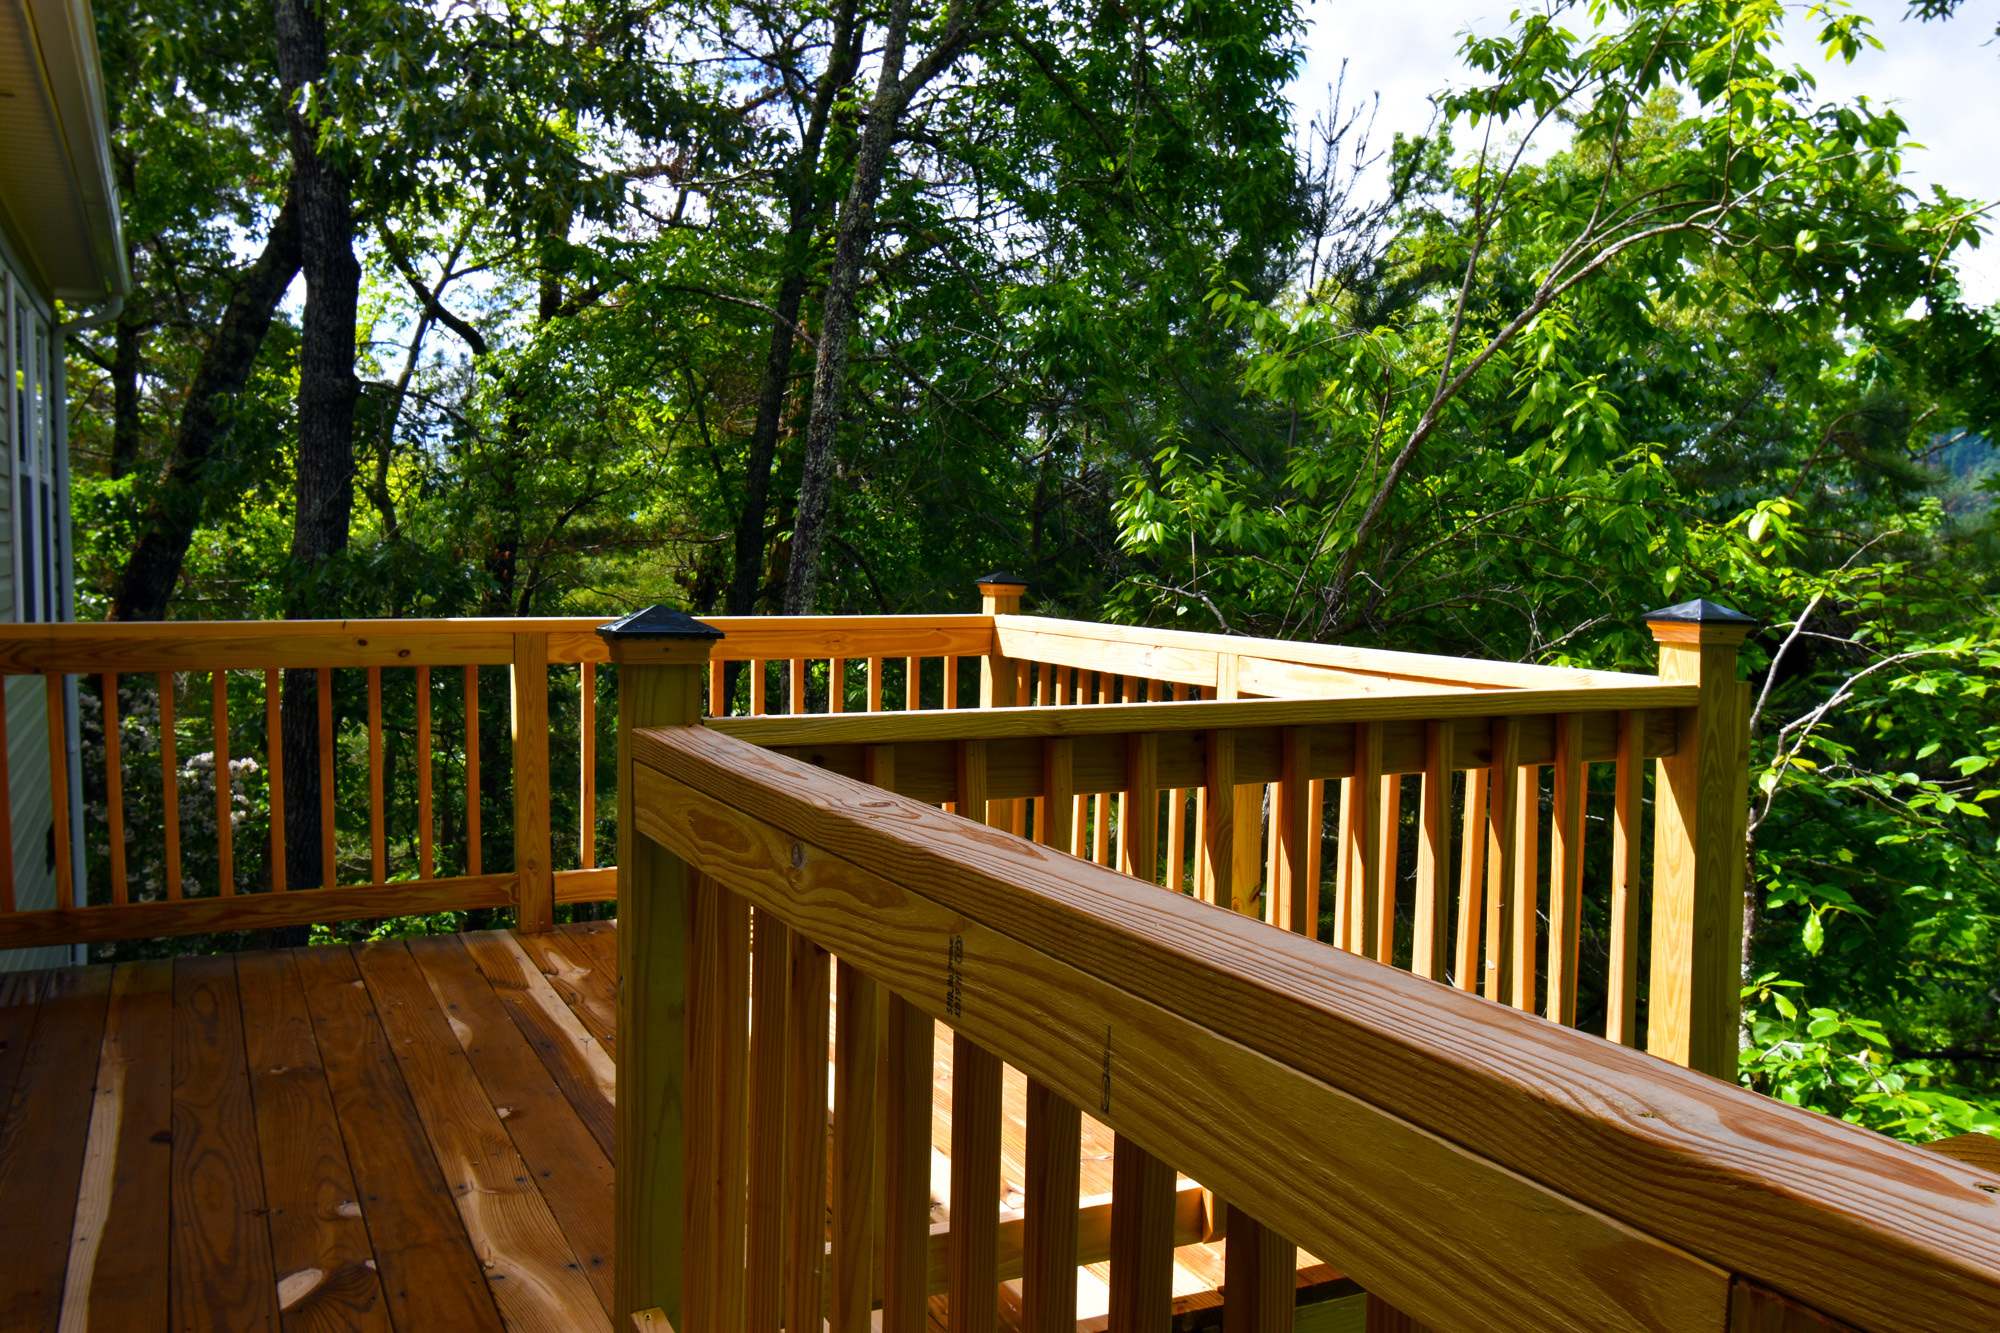 Tree house view dillsboro NC home for sale